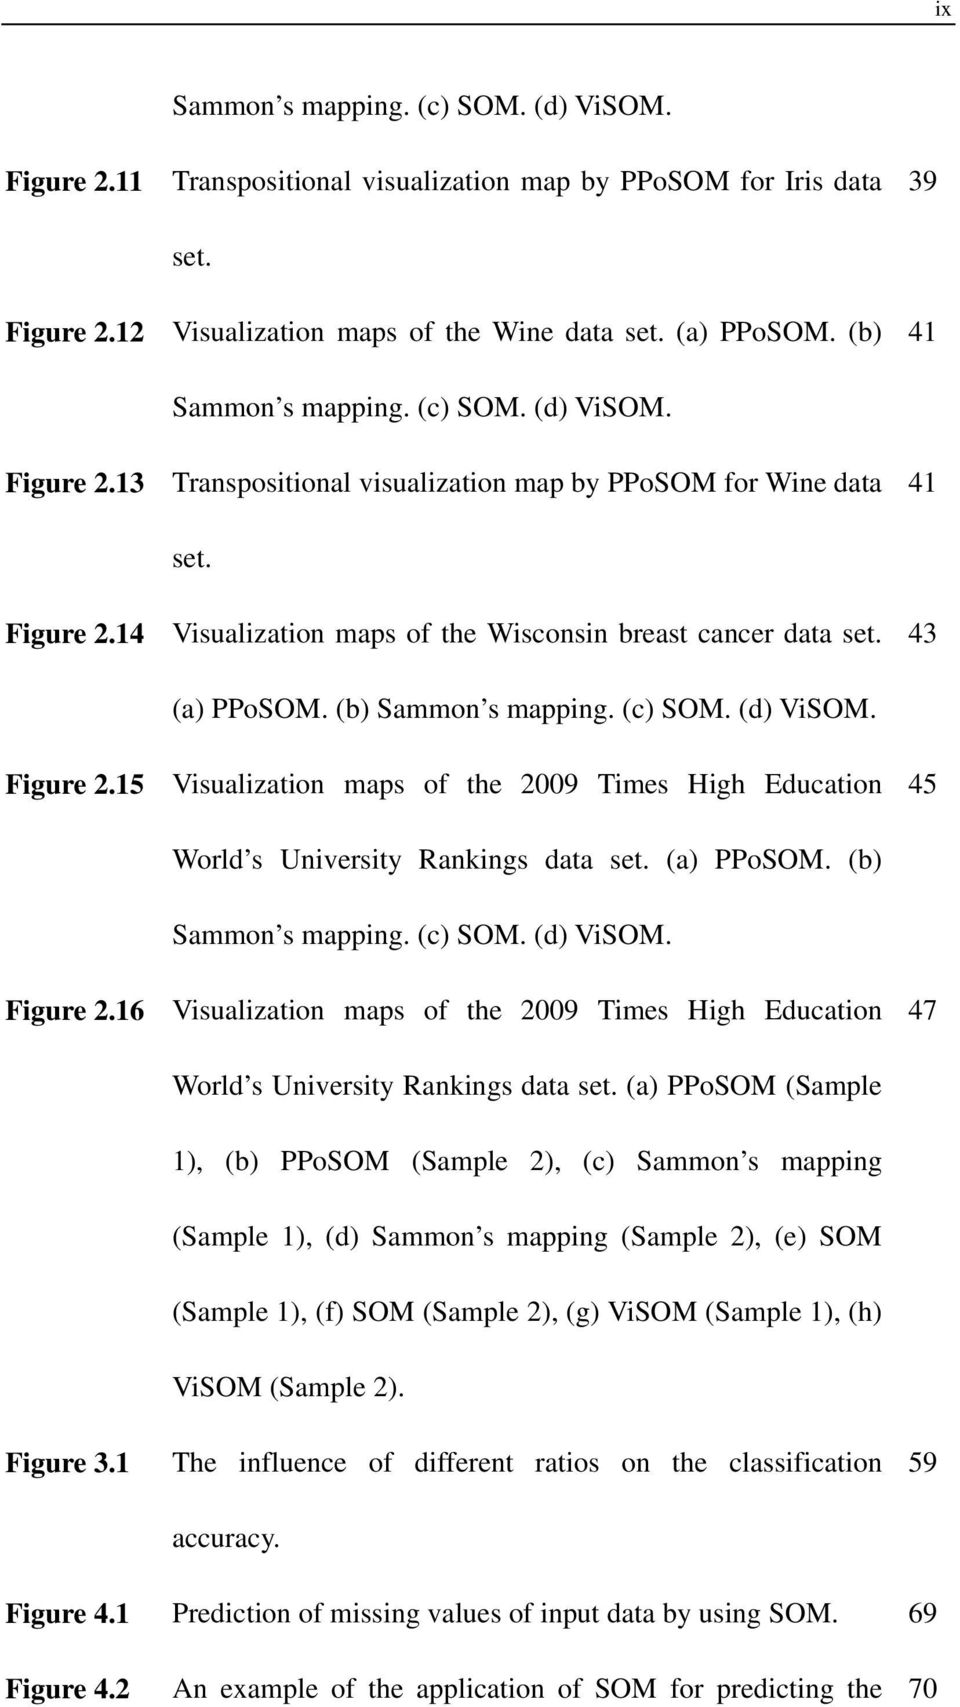 43 (a) PPoSOM. (b) Sammon s mapping. (c) SOM. (d) ViSOM. Figure 2.15 Visualization maps of the 2009 Times High Education 45 World s University Rankings data set. (a) PPoSOM. (b) Sammon s mapping. (c) SOM. (d) ViSOM. Figure 2.16 Visualization maps of the 2009 Times High Education 47 World s University Rankings data set.